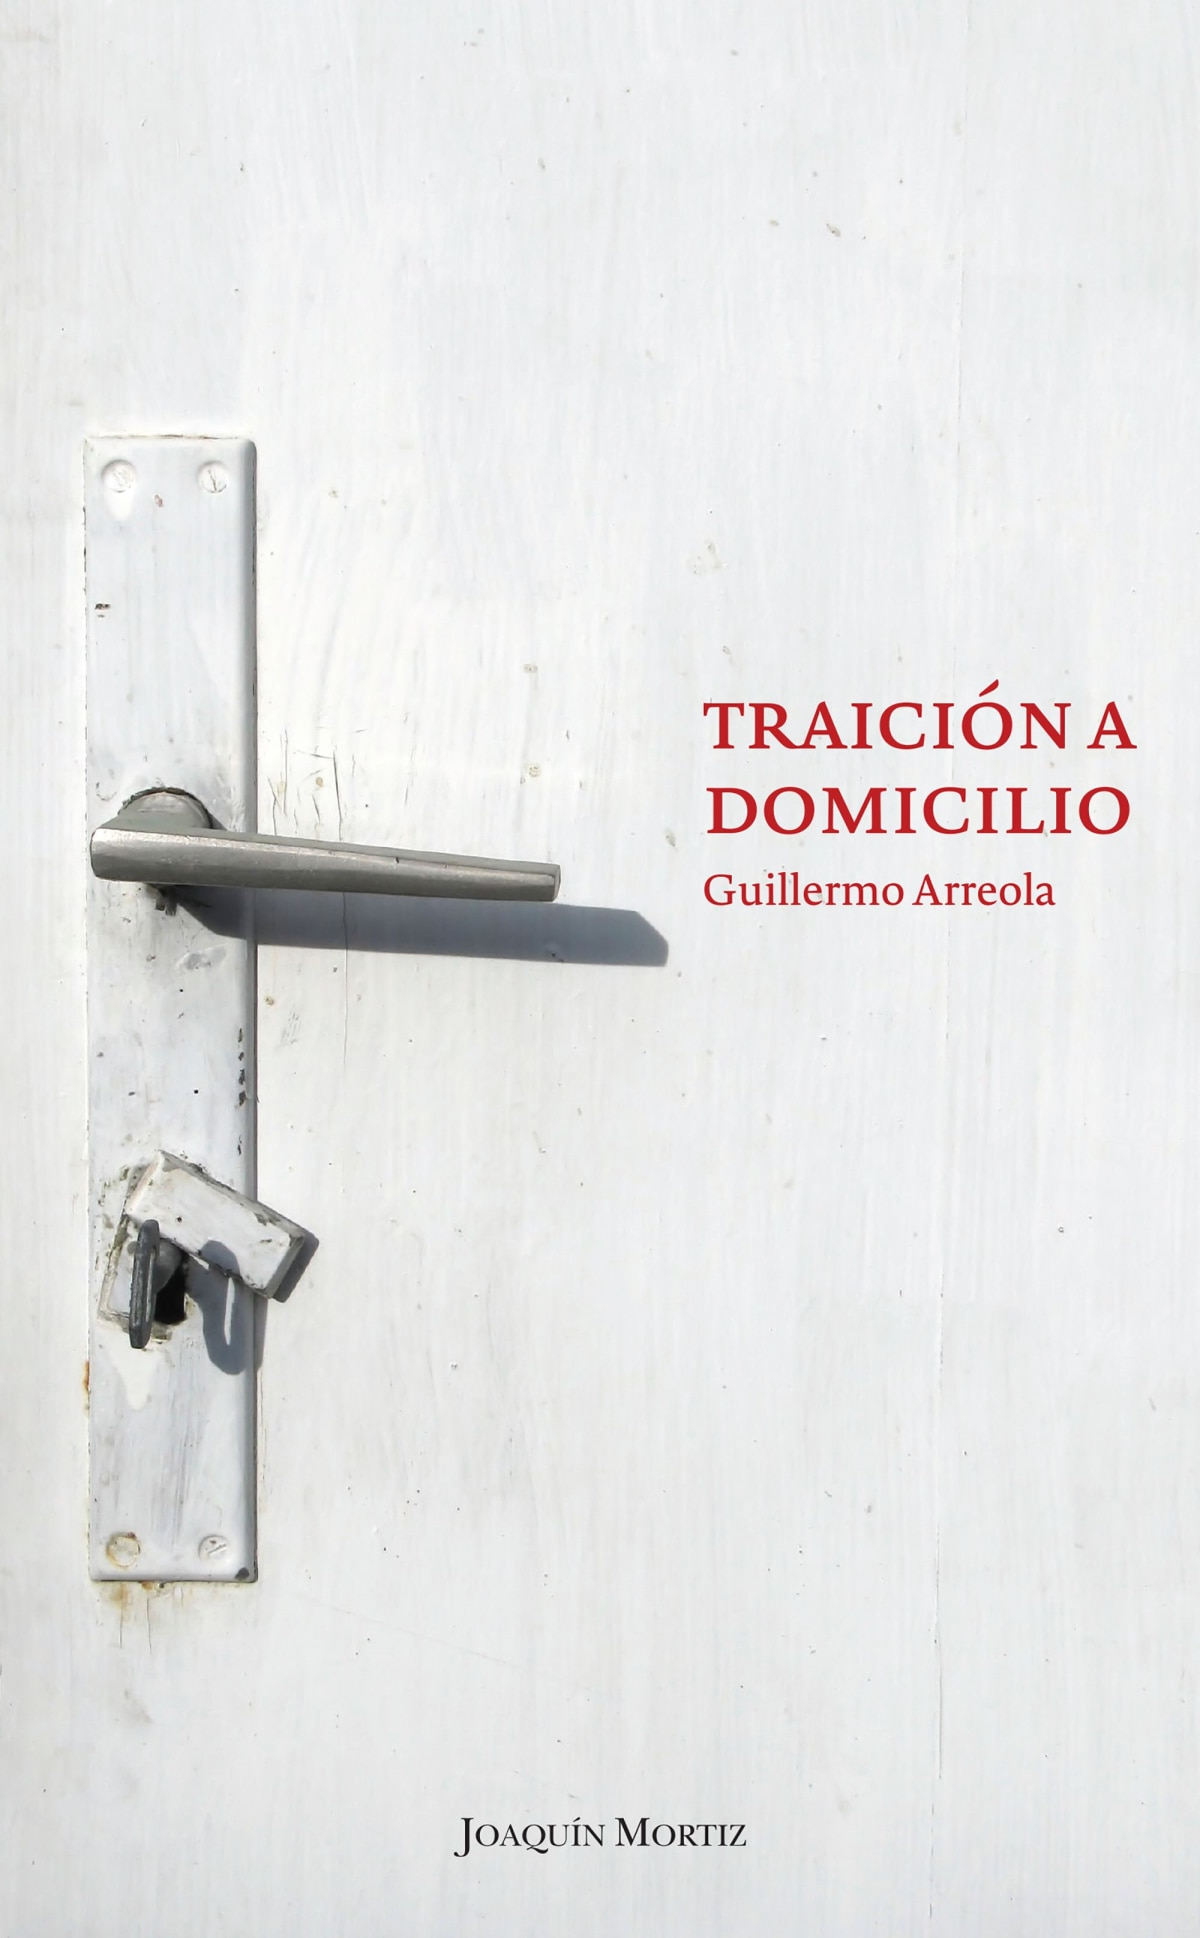 Traición a domicilio